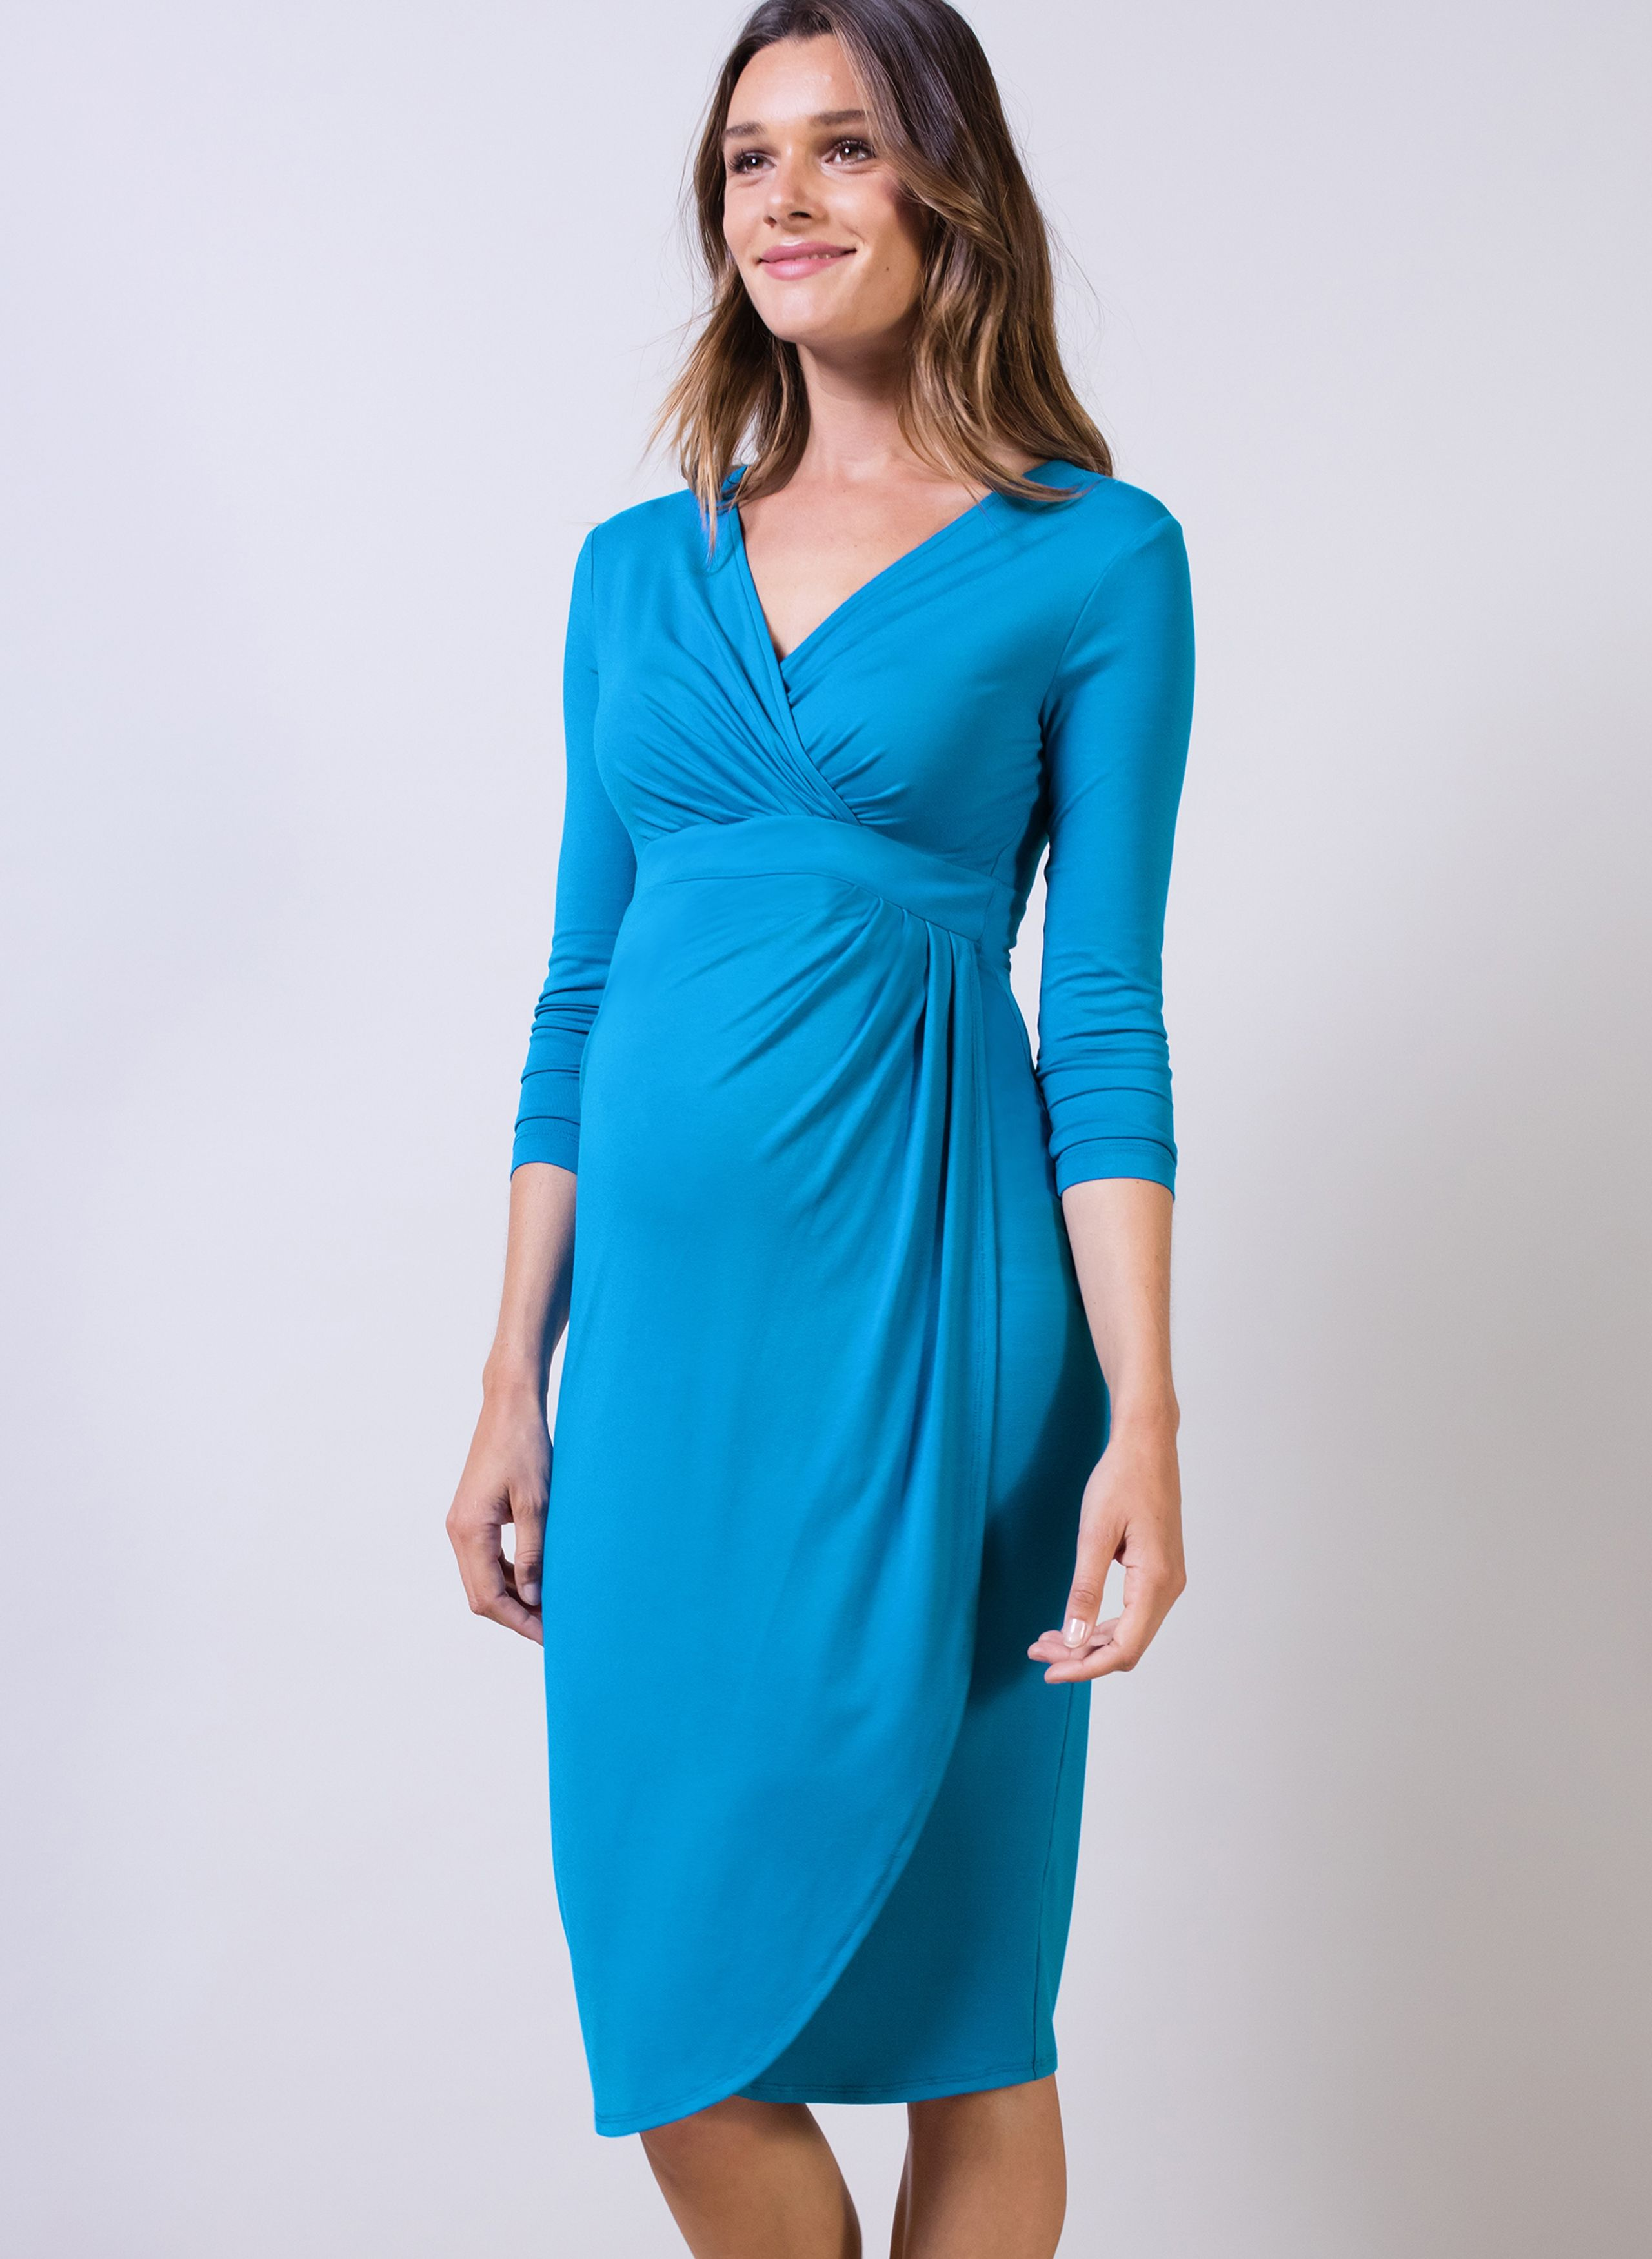 70705dc3b7b51 Evesham Maternity Dress in [colour] at Isabella Oliver. Shop our luxury  collection today for stylish, premium quality maternity clothes that will  last.